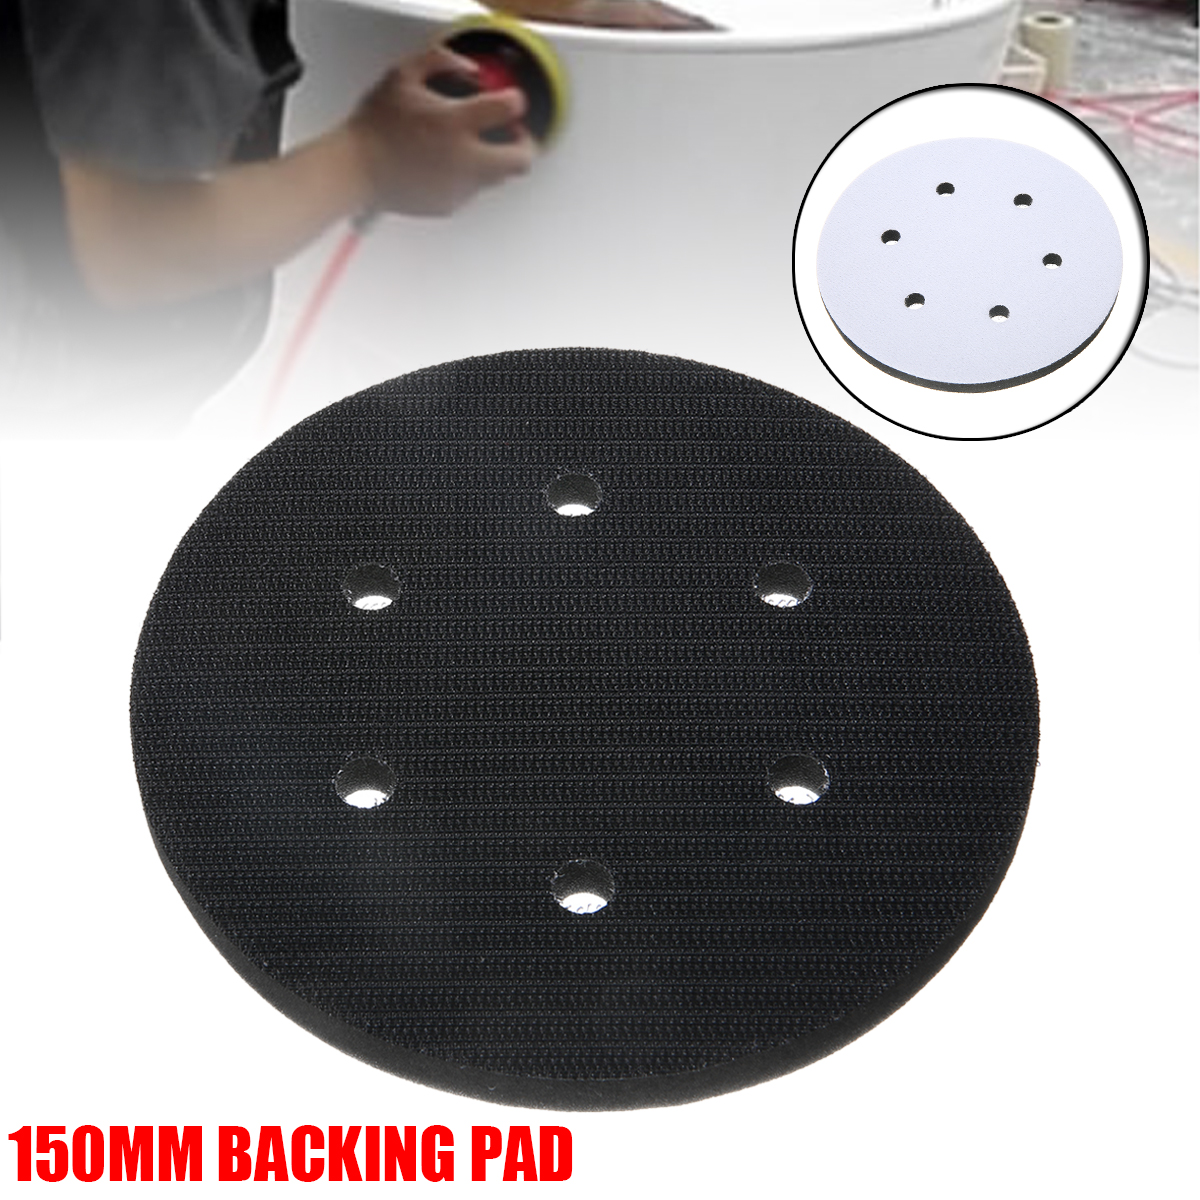 1pc 150mm Backing Pad Mat 6 Inch 6 Hole Soft Interface Cushion Pad Hook And Loop Foam Protecting Sanding Disc Power Sander Tools